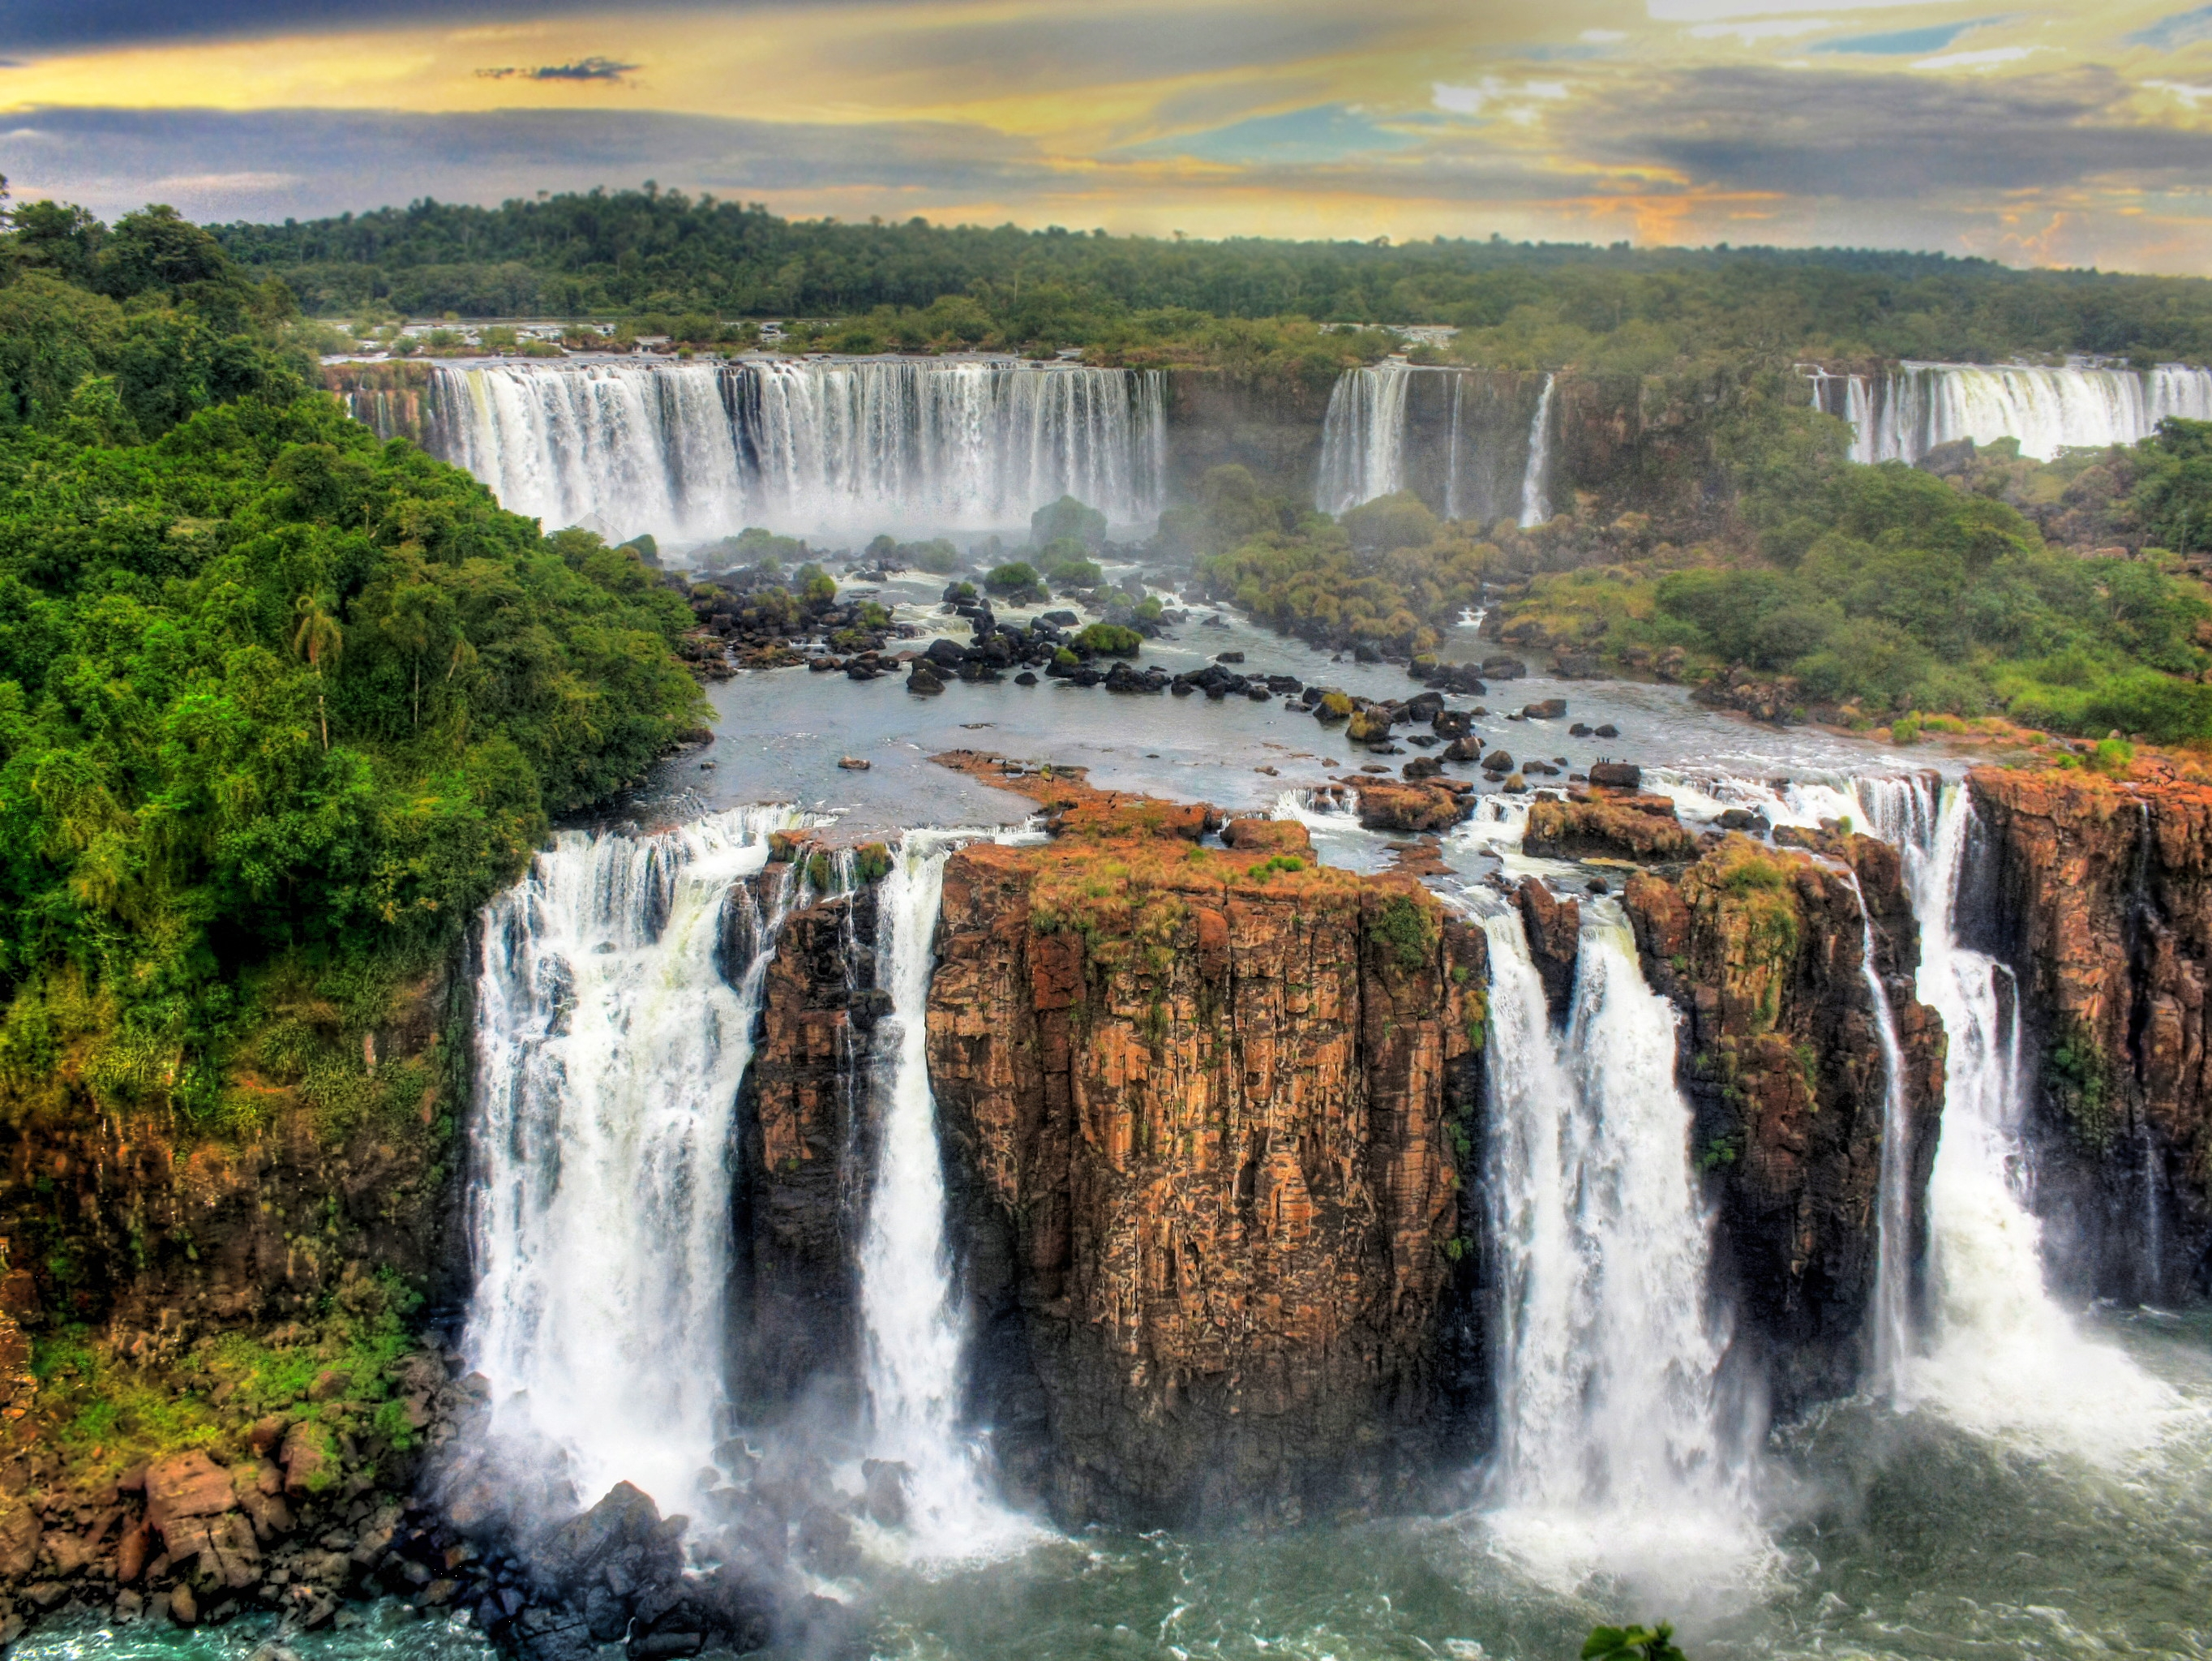 Family summer holiday to Iguazu Falls